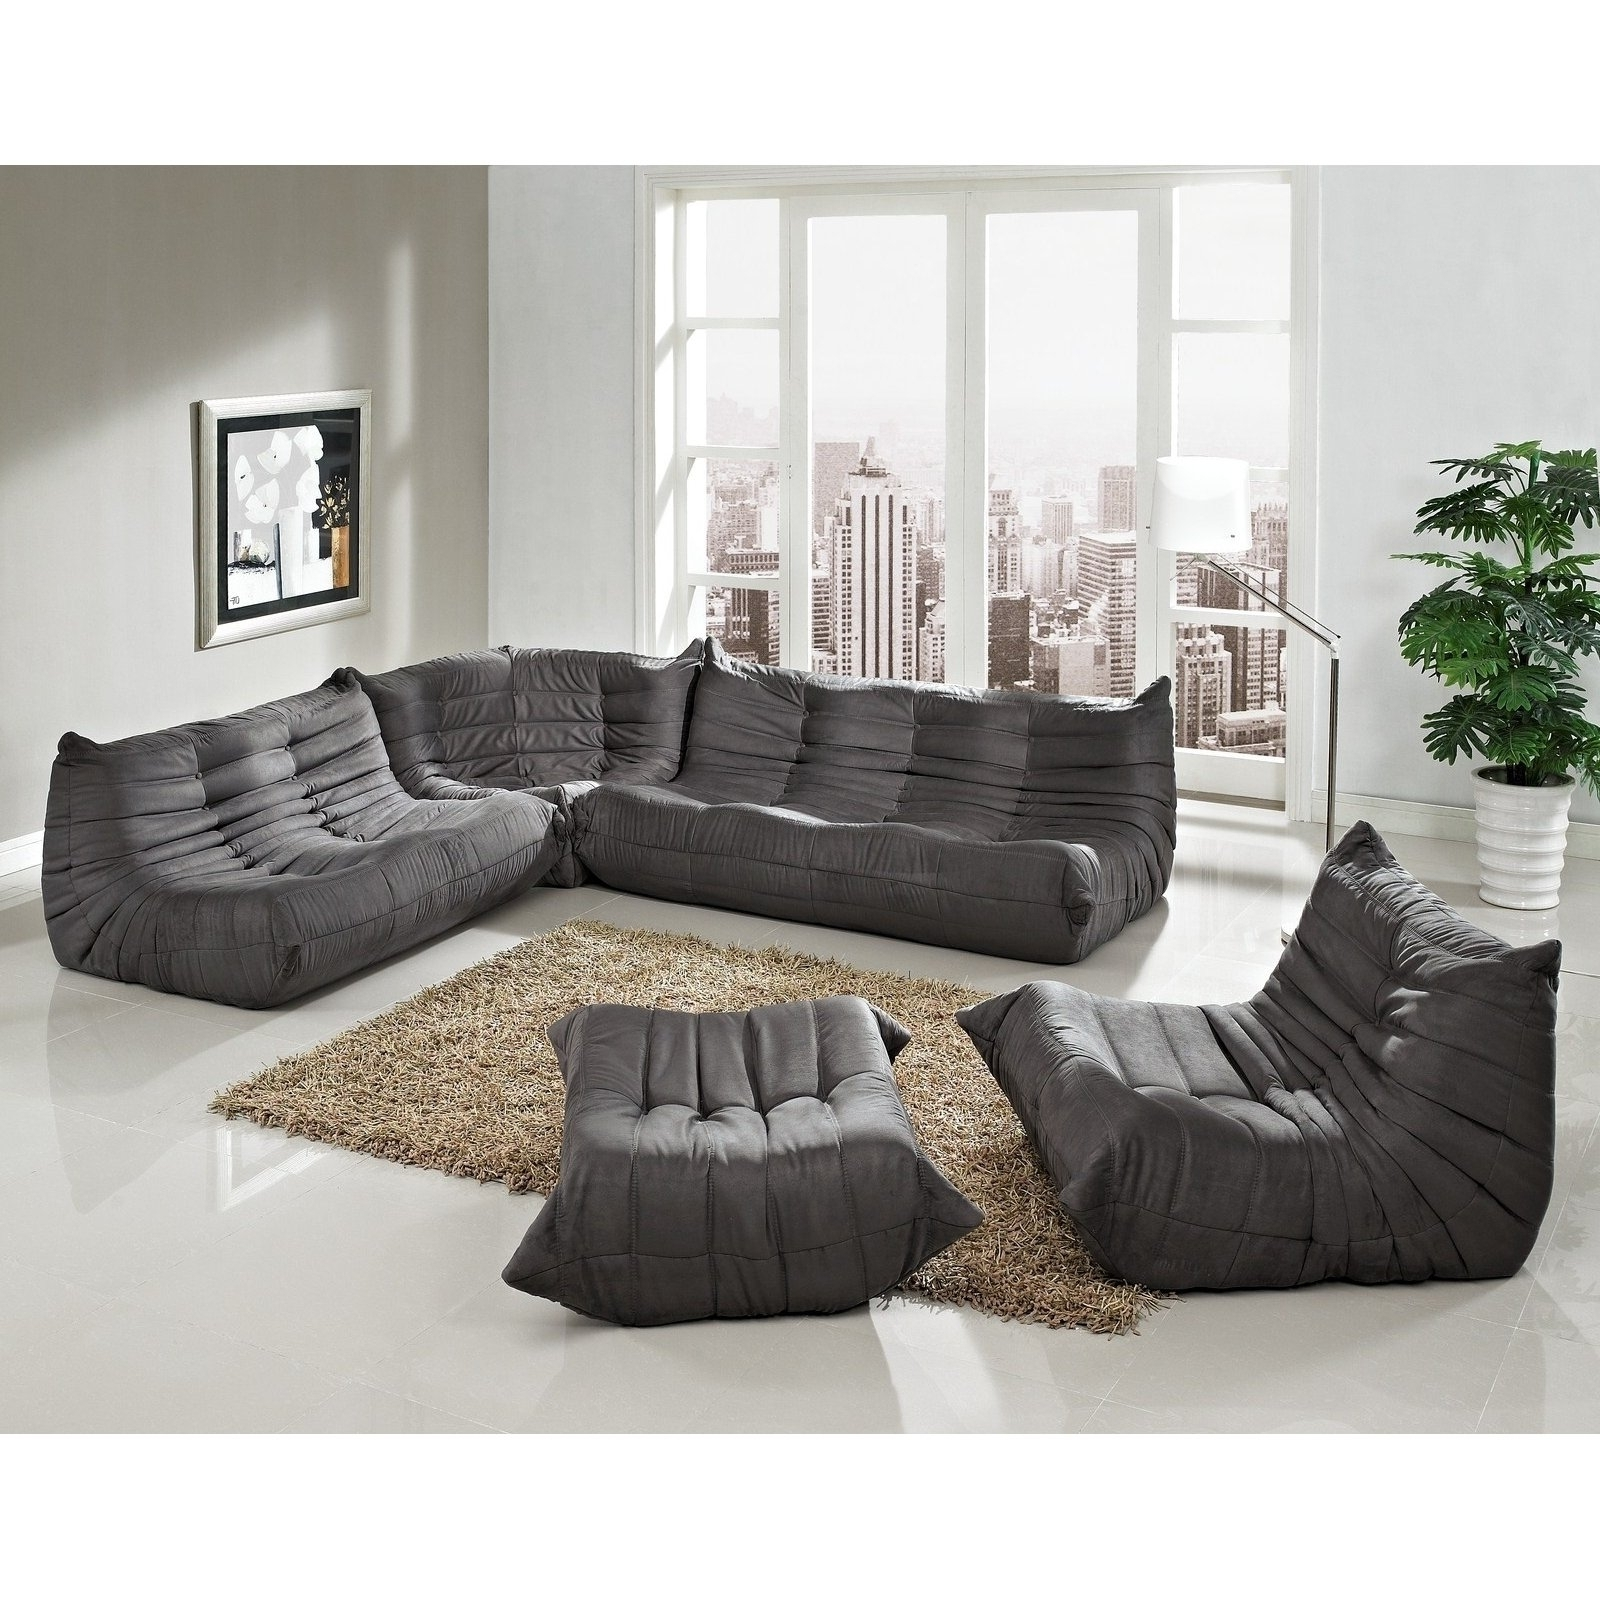 Recent Unique Low Profile Sectional Sofa 26 For Sofa Design Ideas With Low With Unique Sectional Sofas (View 3 of 20)